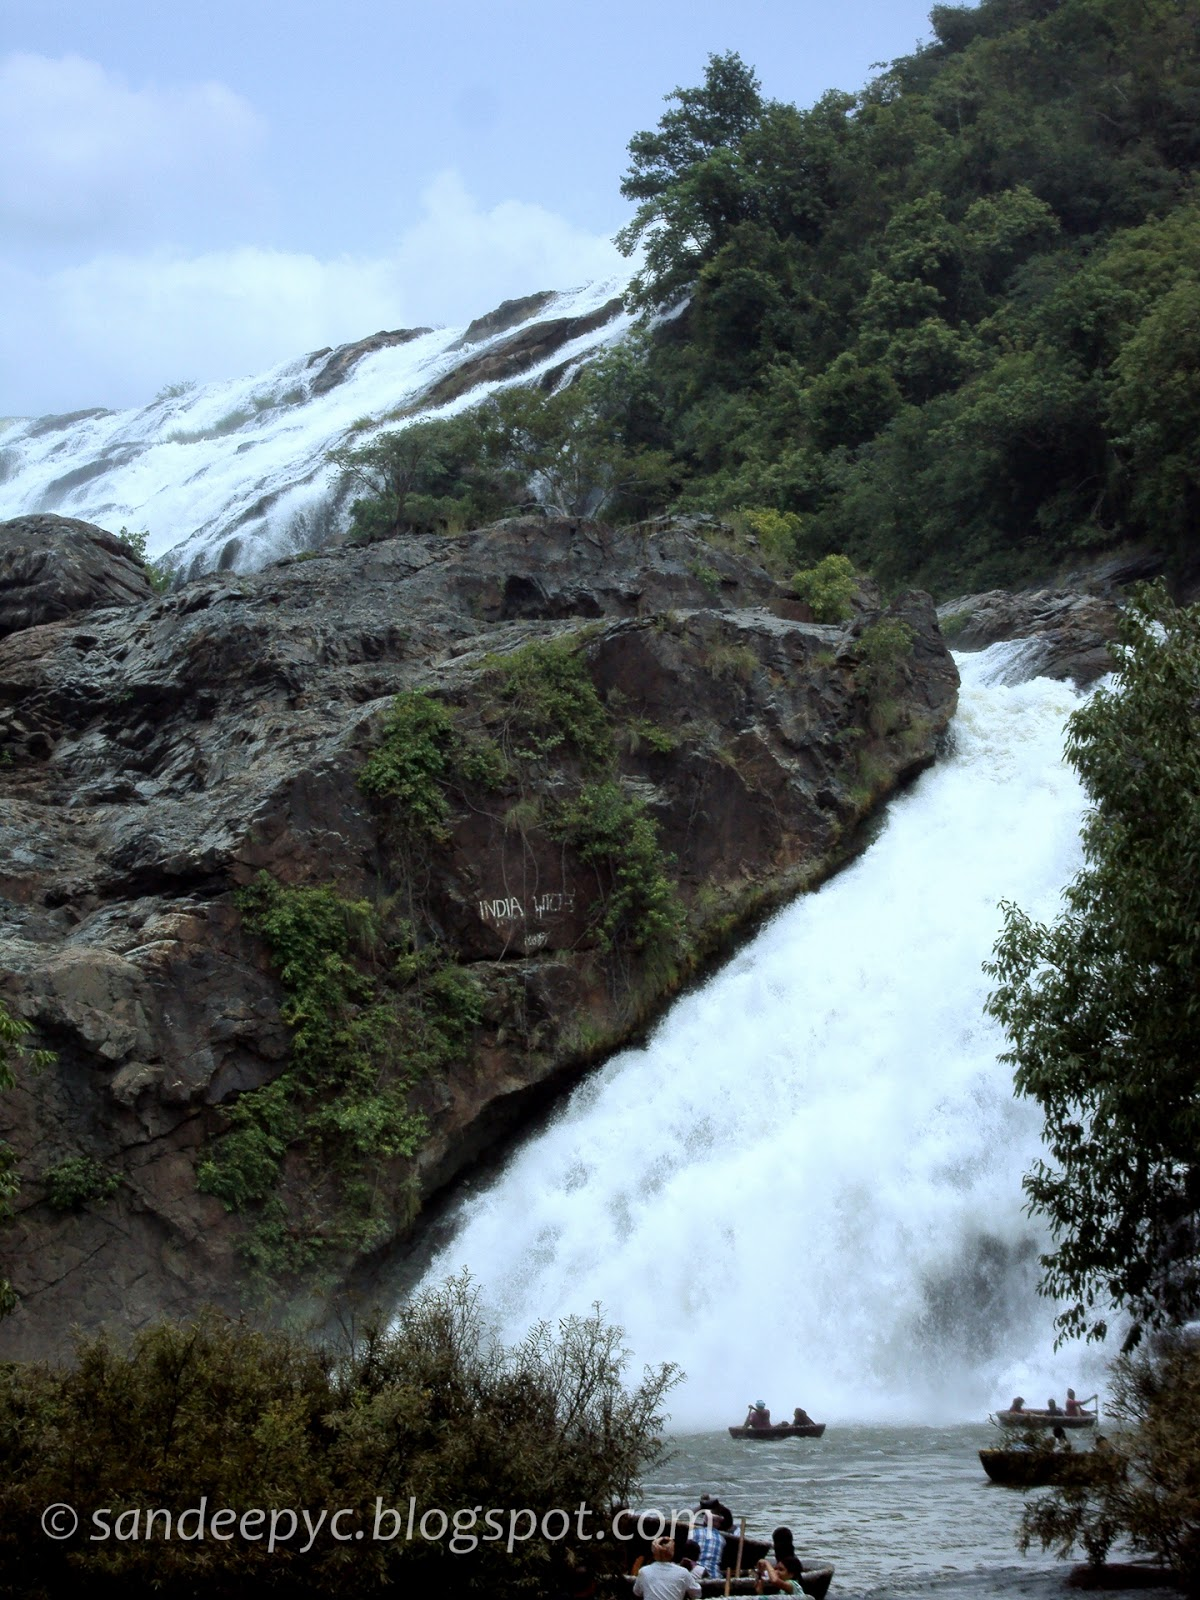 Bharachukki falls, coracle going till the tip of the falls